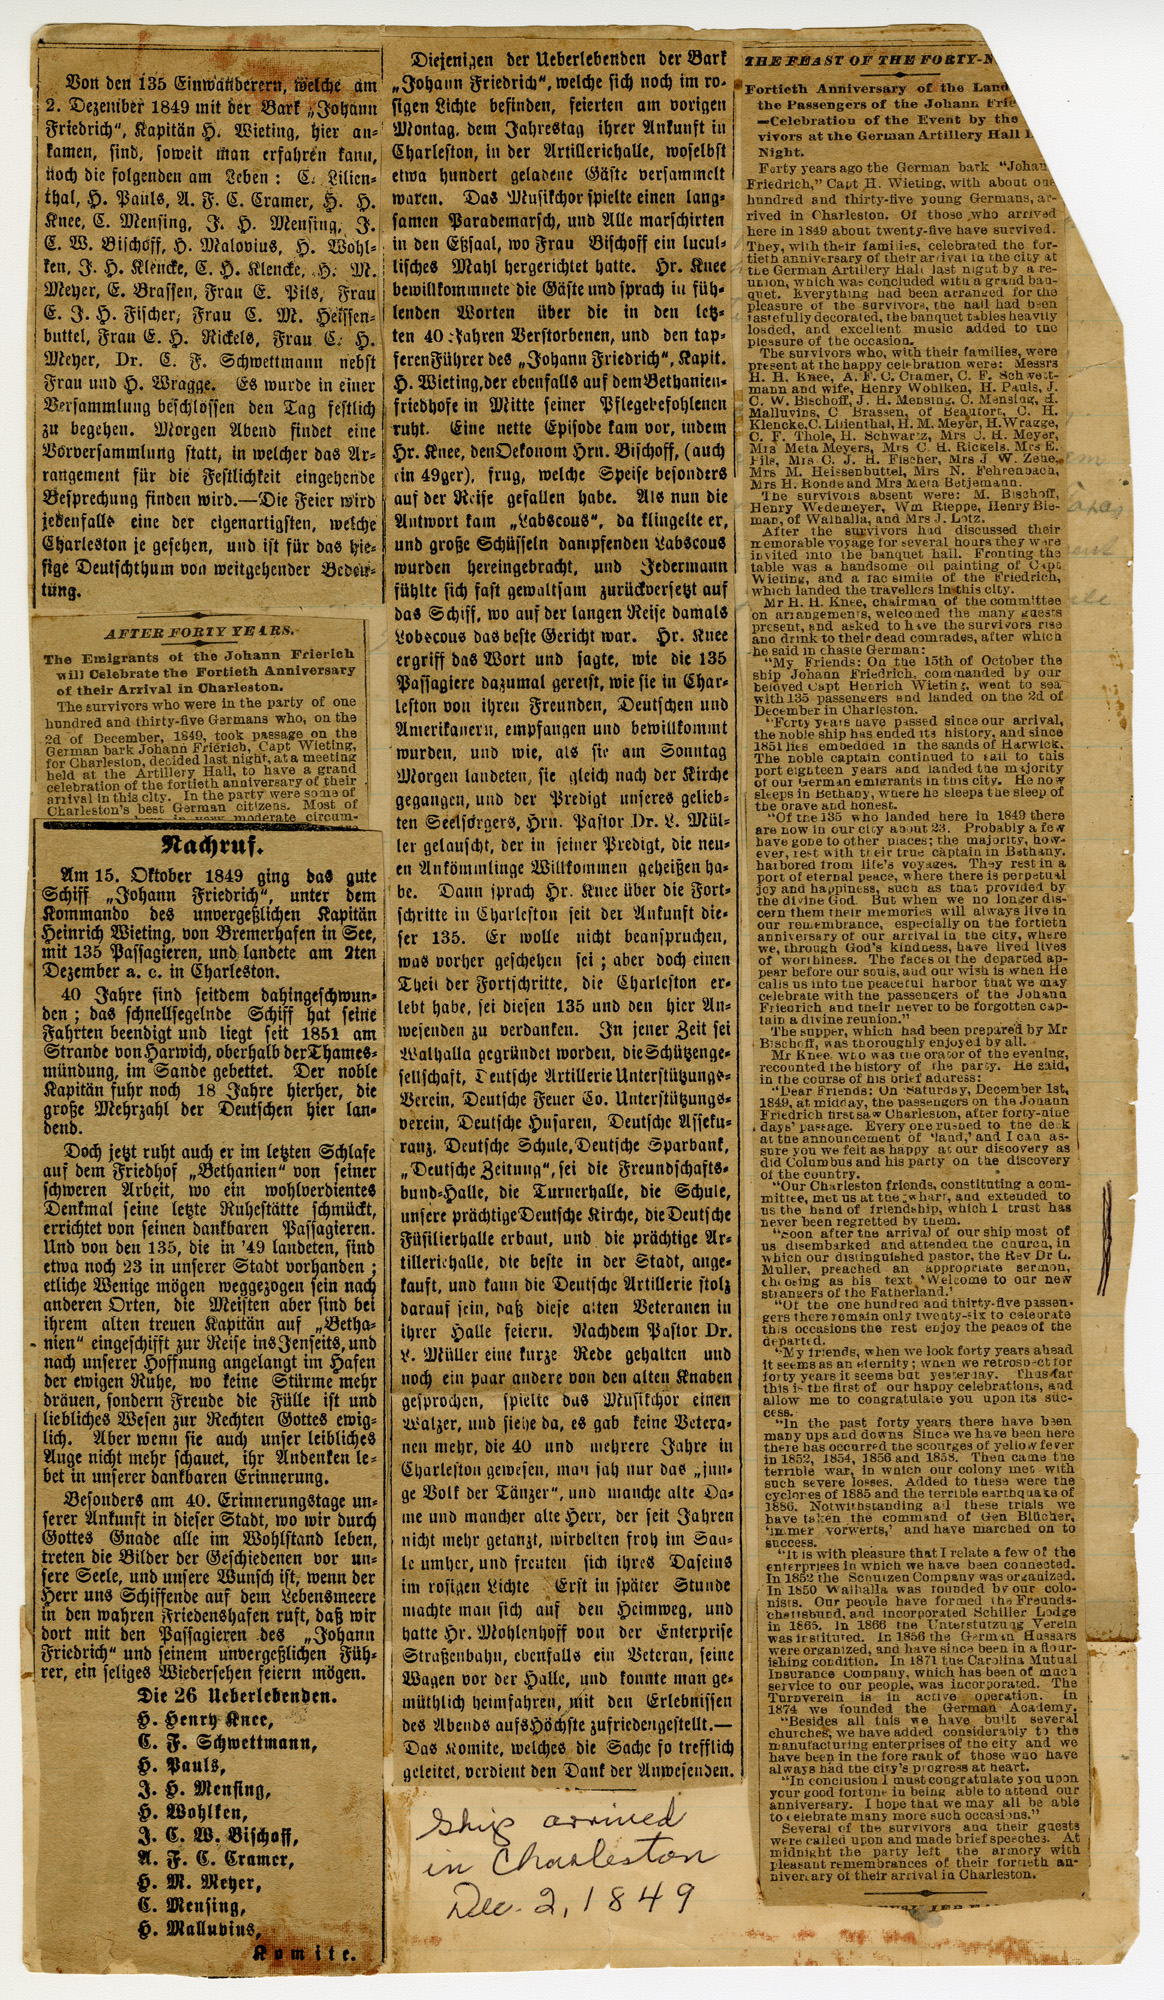 Newpaper Clippings of Fortieth Anniversary of German Immigrant Arrival in Charleston